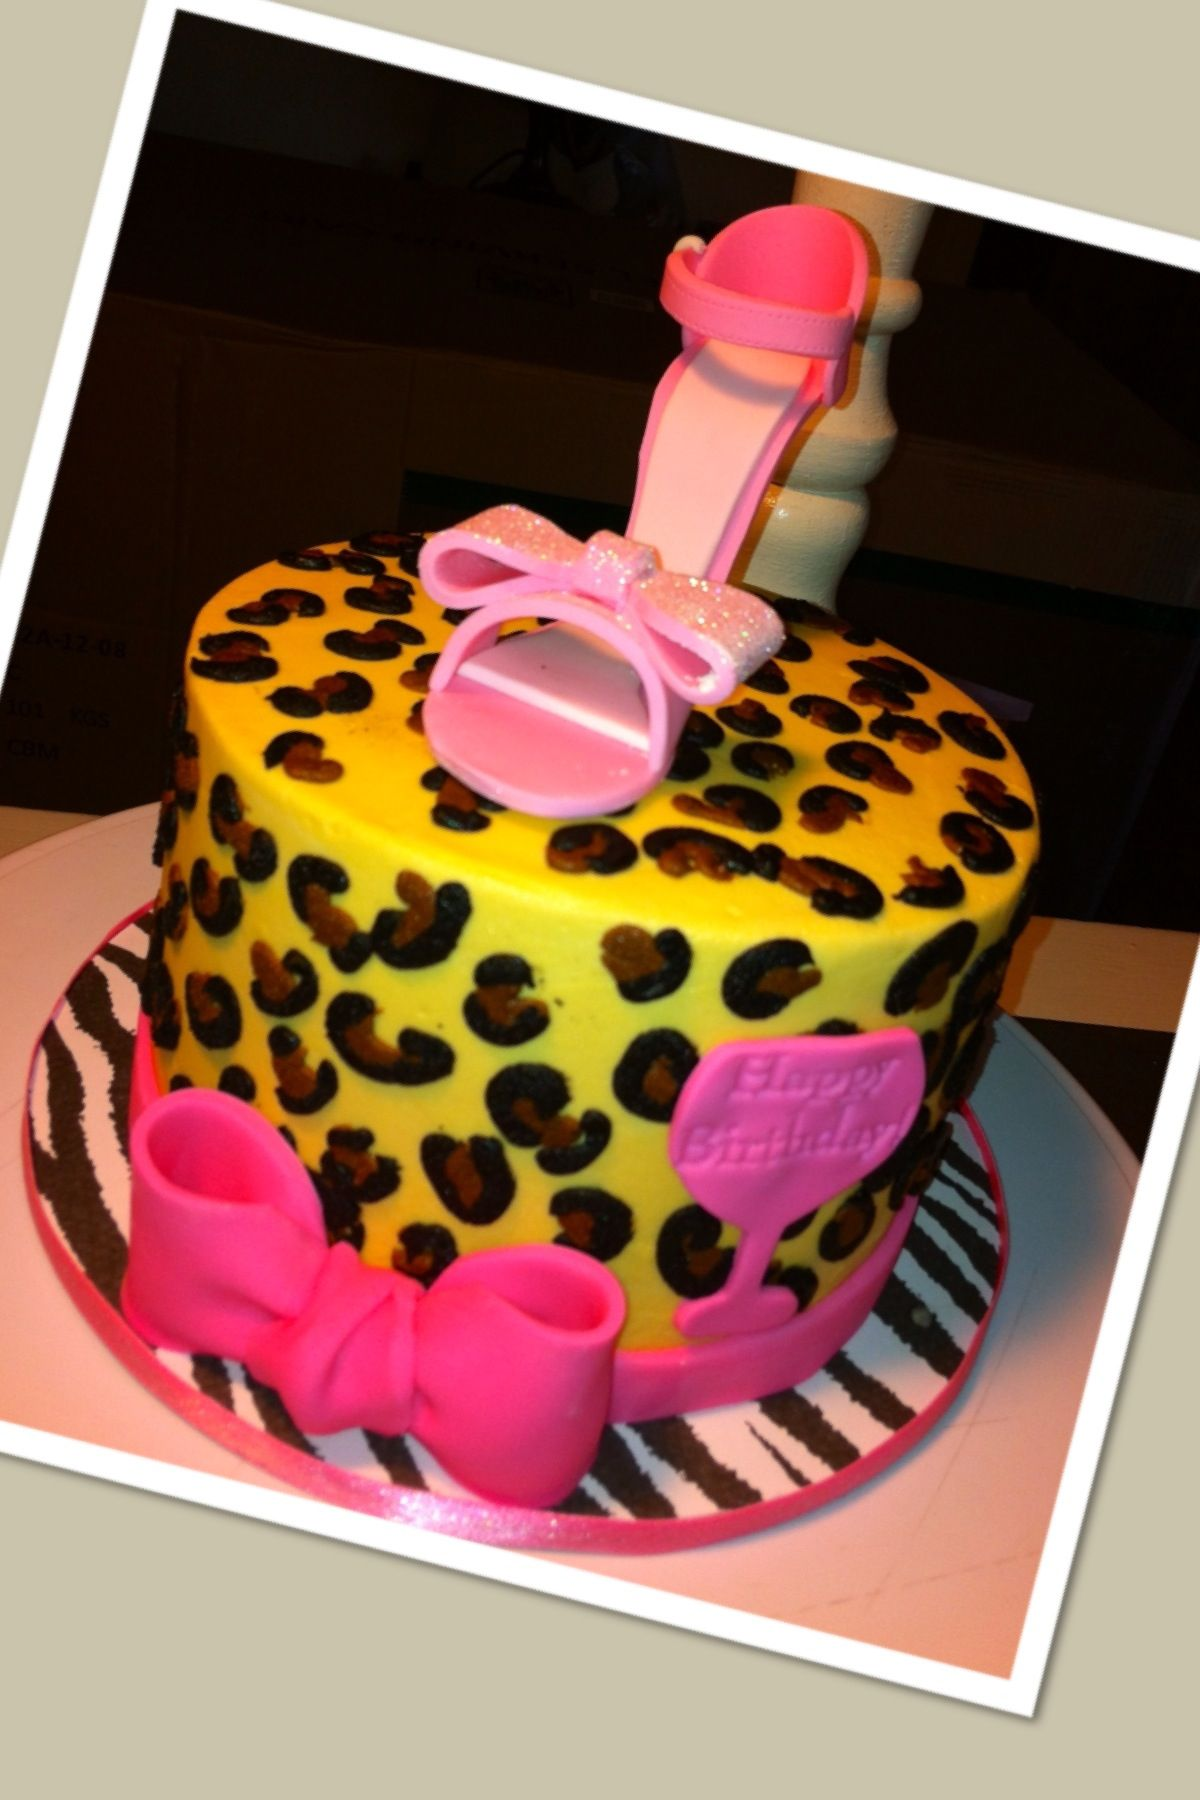 Happy birthday newly divorcee with this cute stiletto